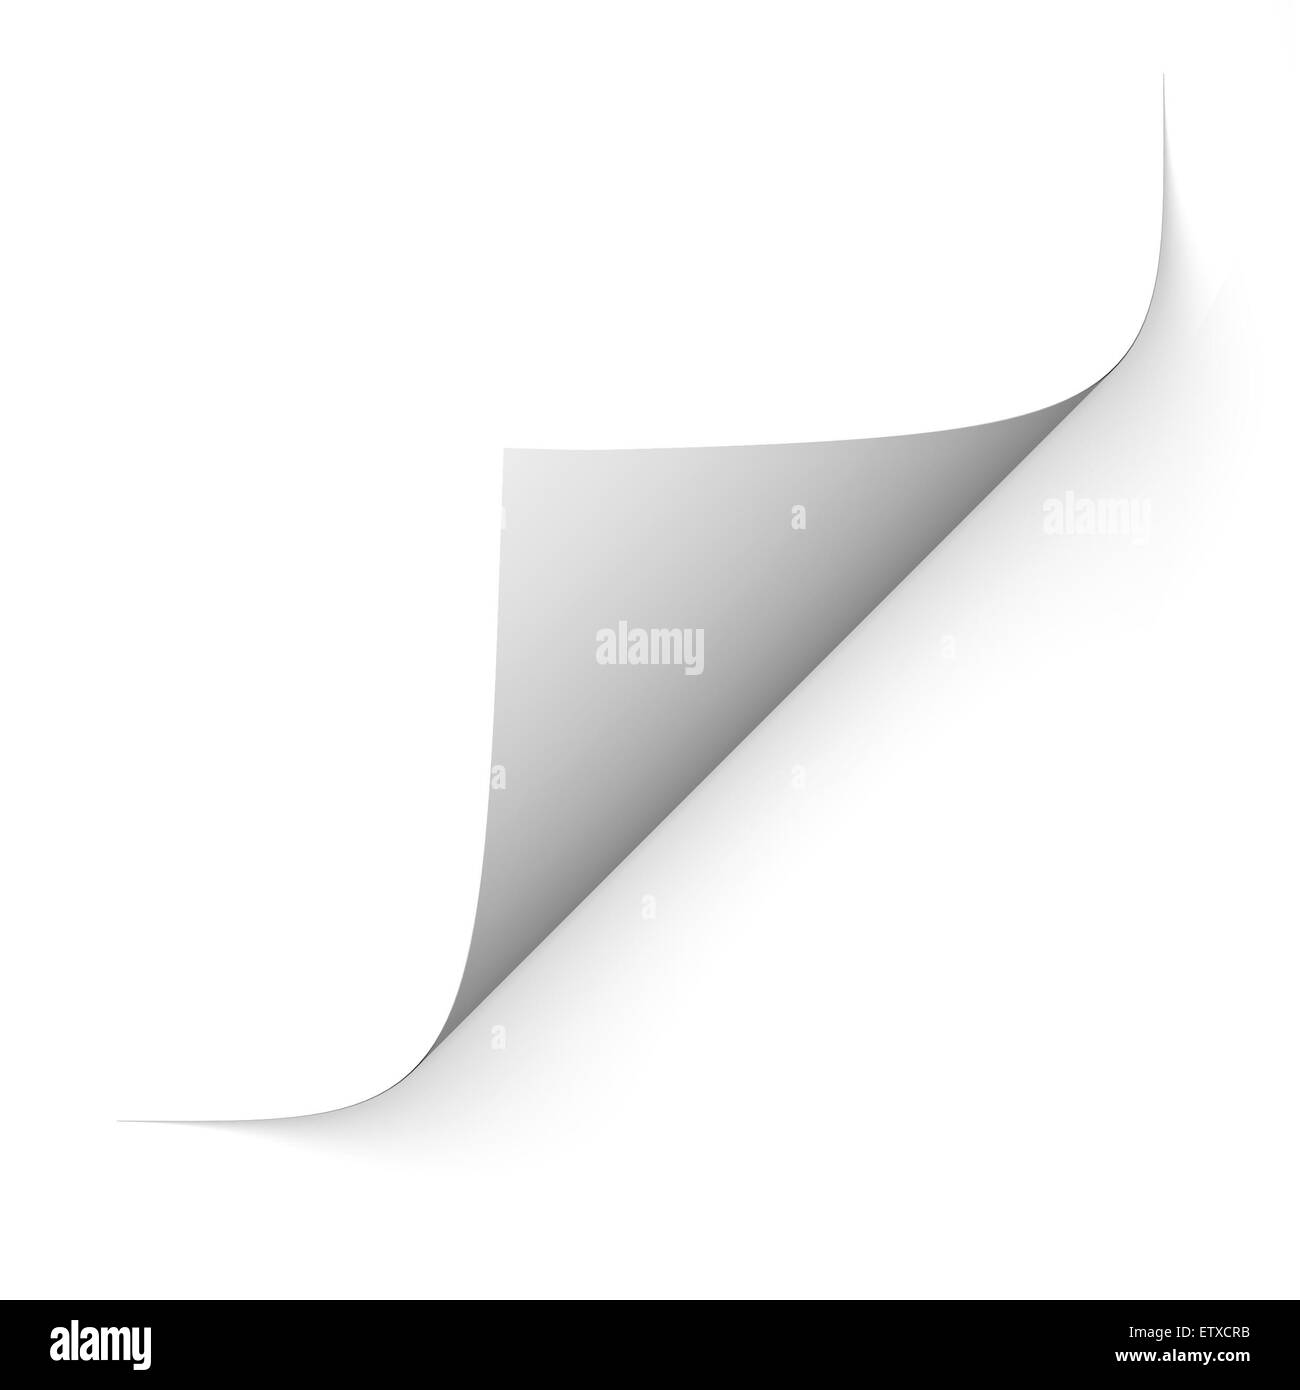 Page Curl white - A curved page on a white background - Stock Image